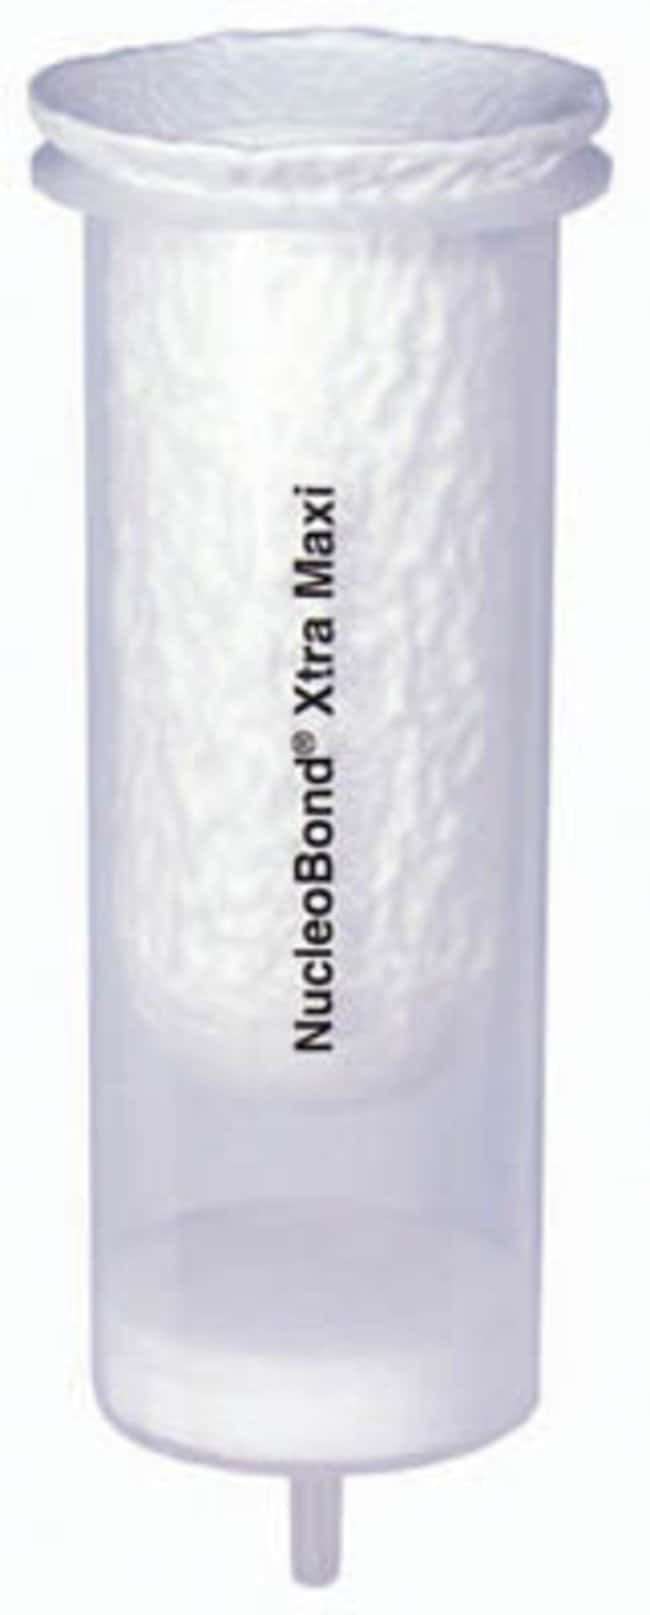 Macherey-Nagel™ NucleoBond™ Xtra Maxi Kits No. of Reactions: 100 products